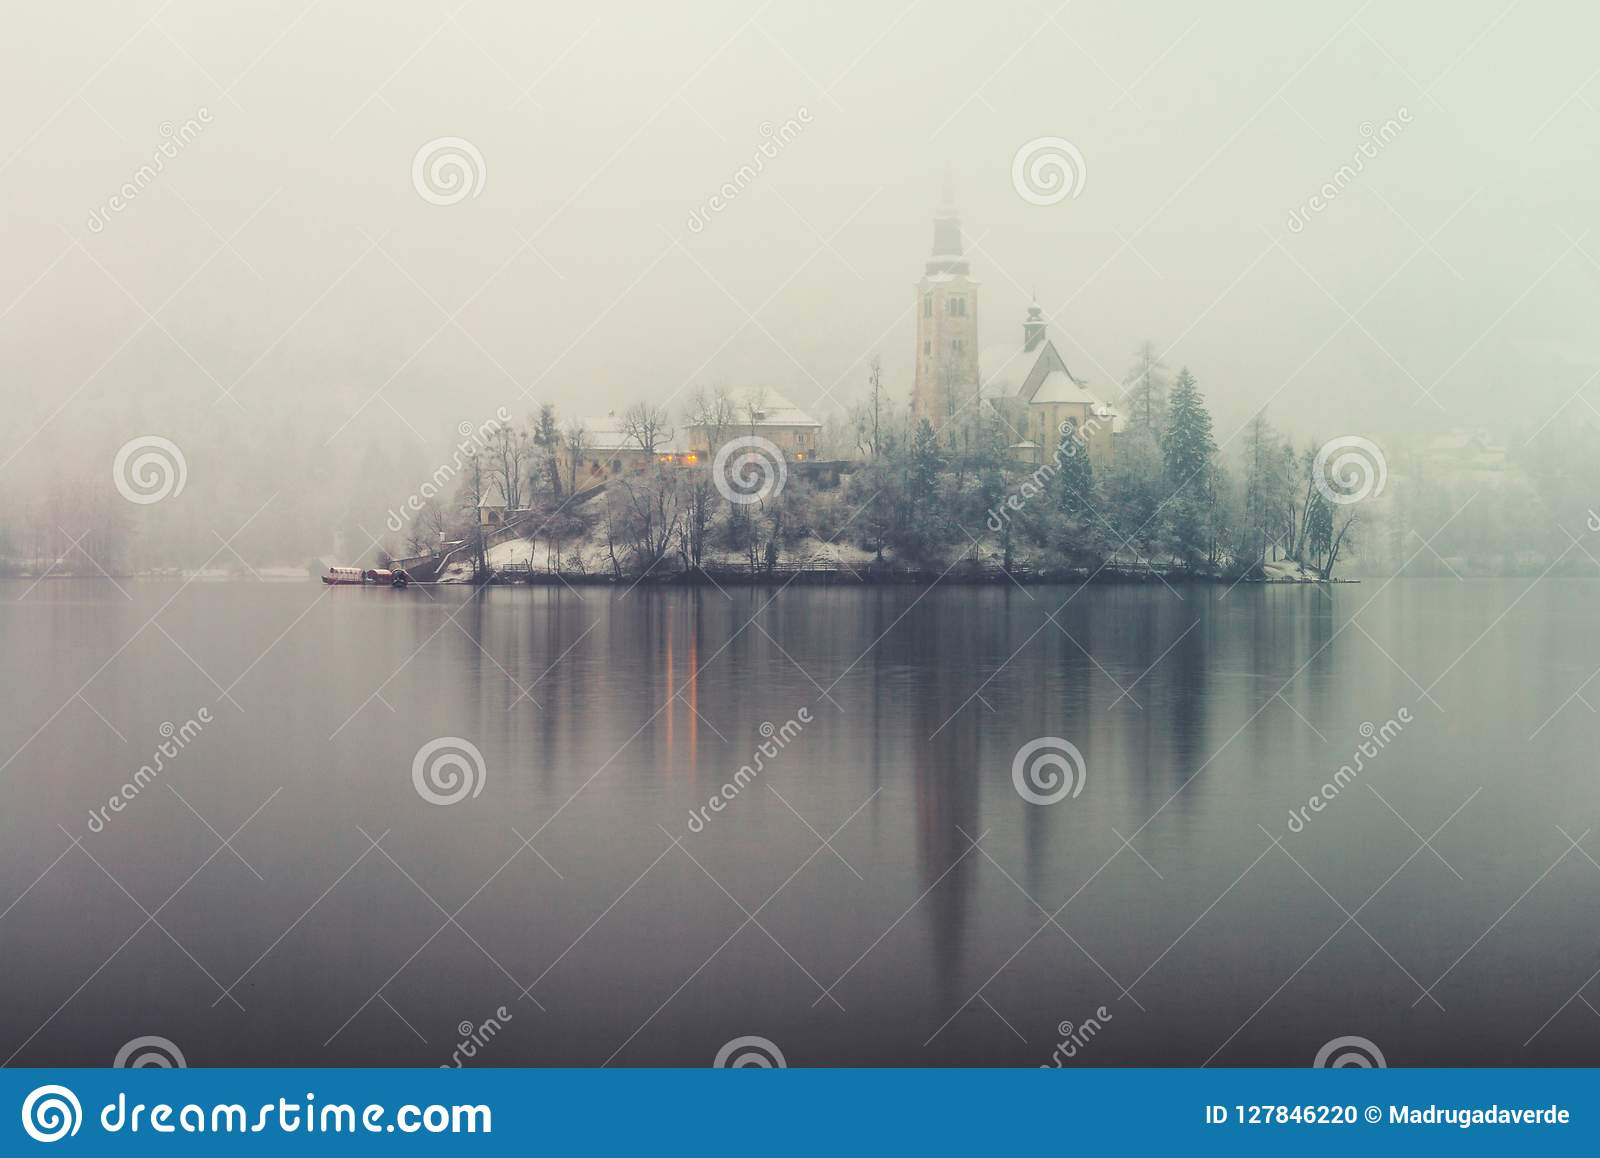 Anoramic view of Bled lake in the morning, Slovenia